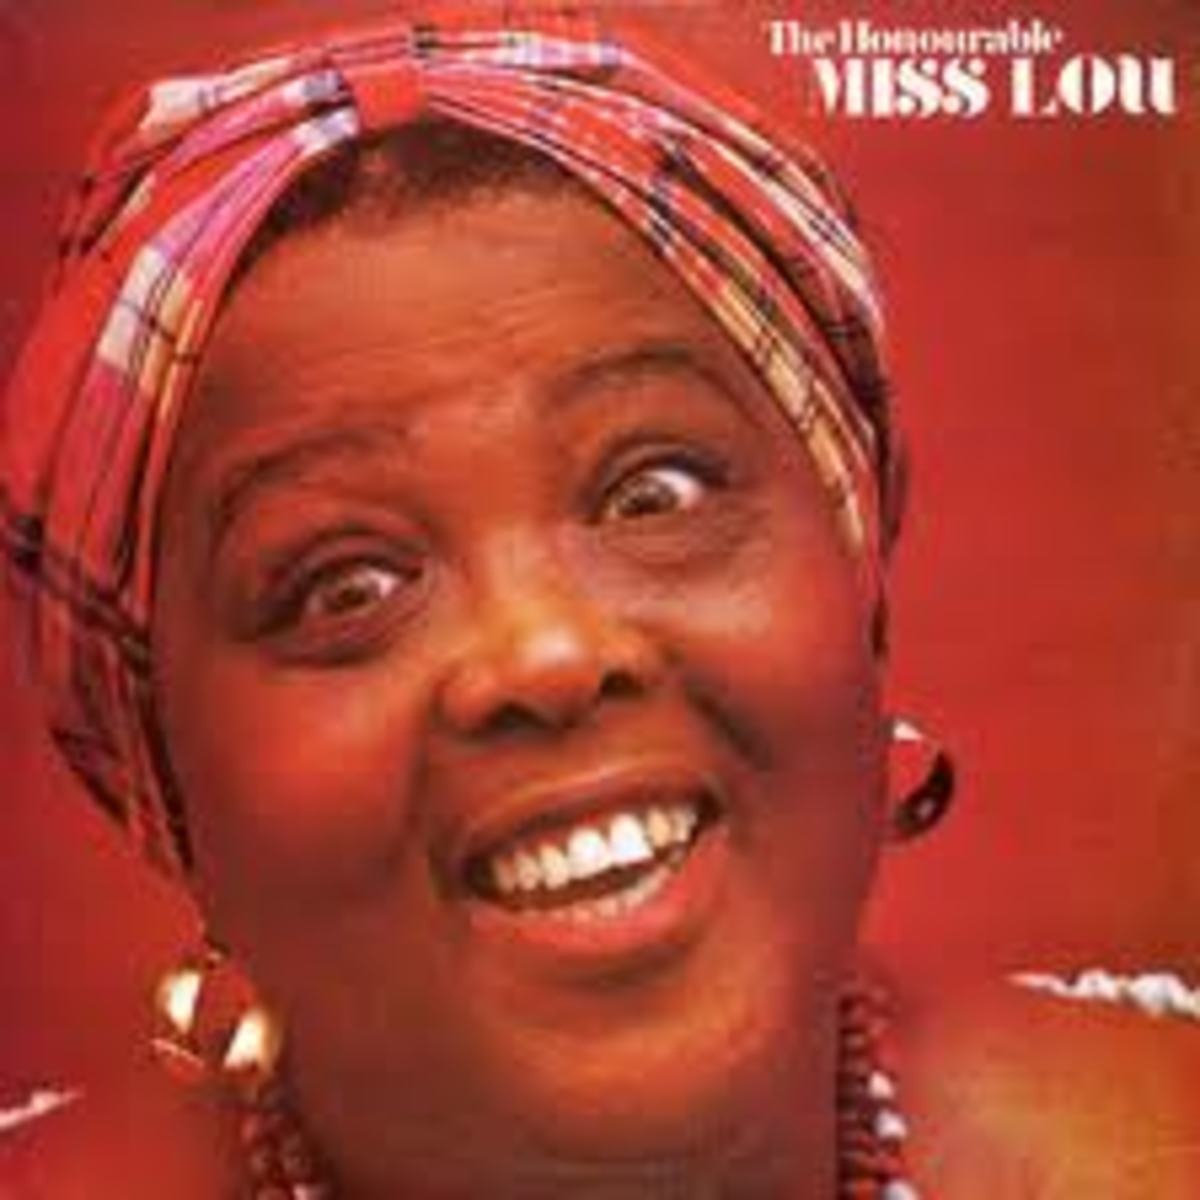 """Tenk Yuh Miss Lou""- The Life and Works of Louise Bennett-Coverley"